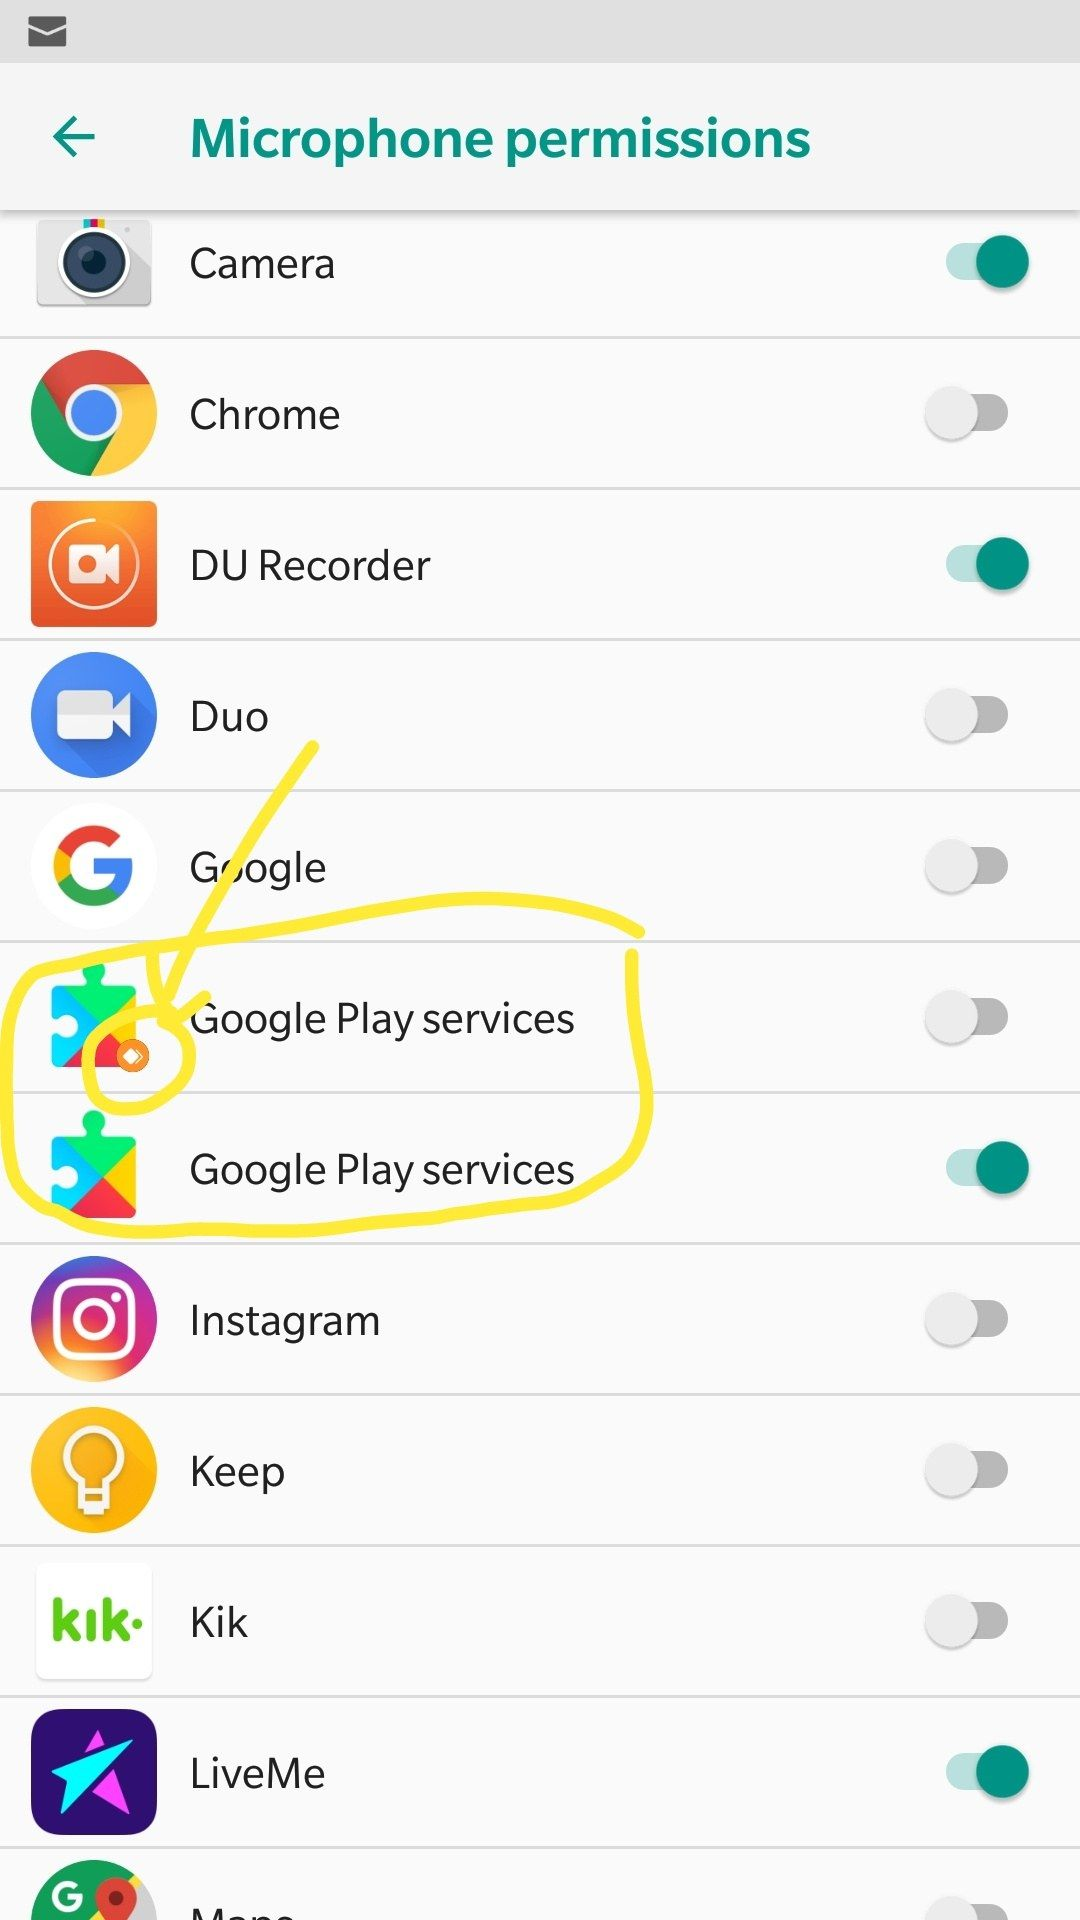 Two google play services? - OnePlus Community